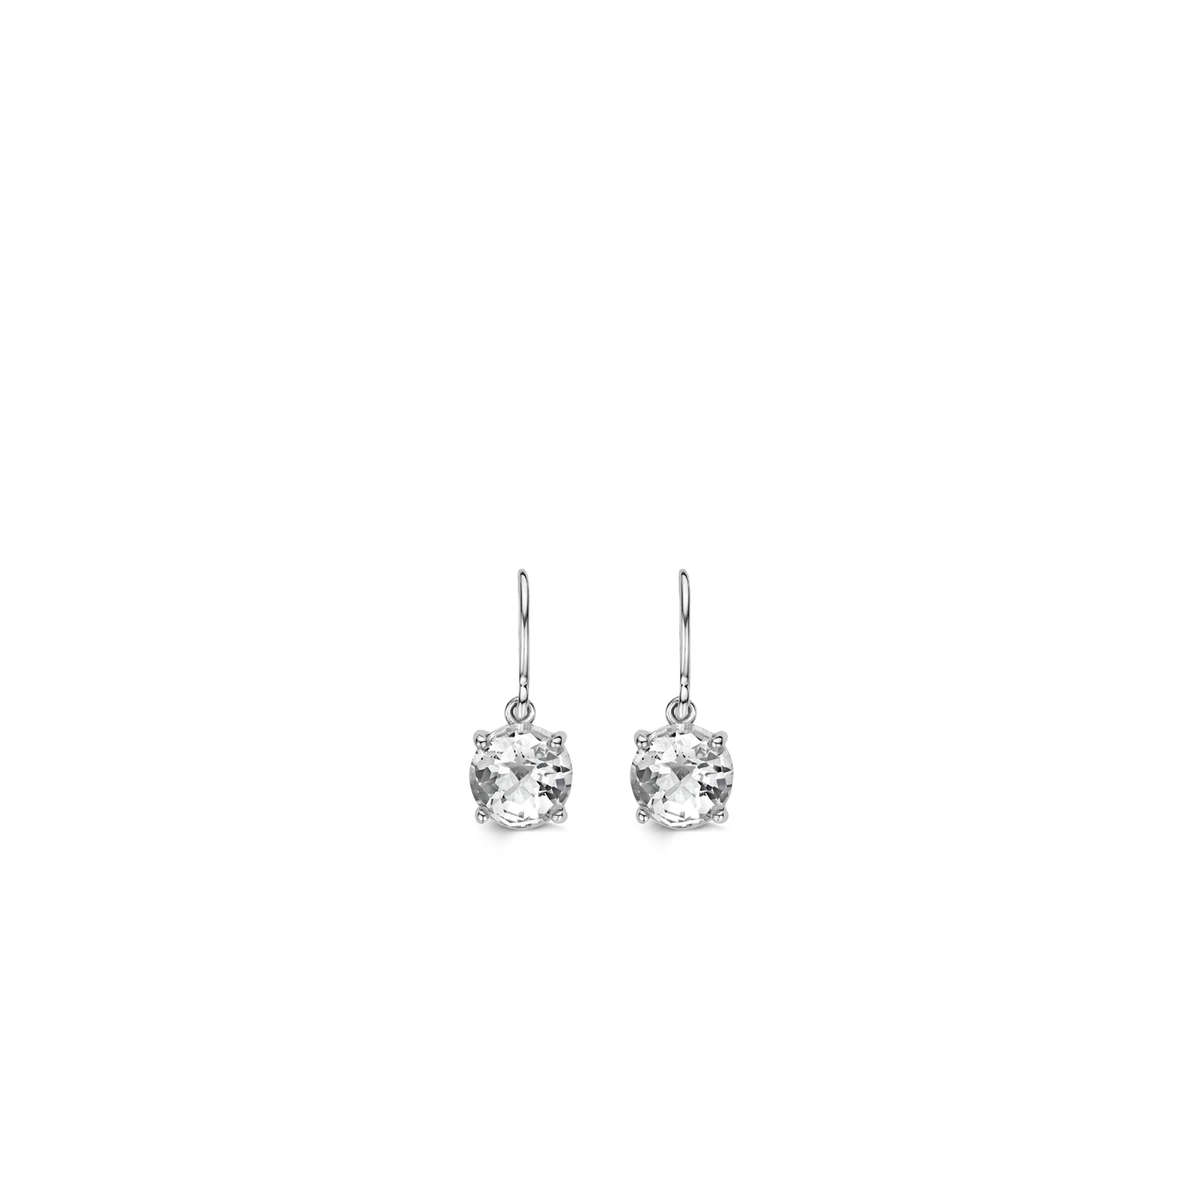 TI SENTO - Milano Earrings 7608ZI